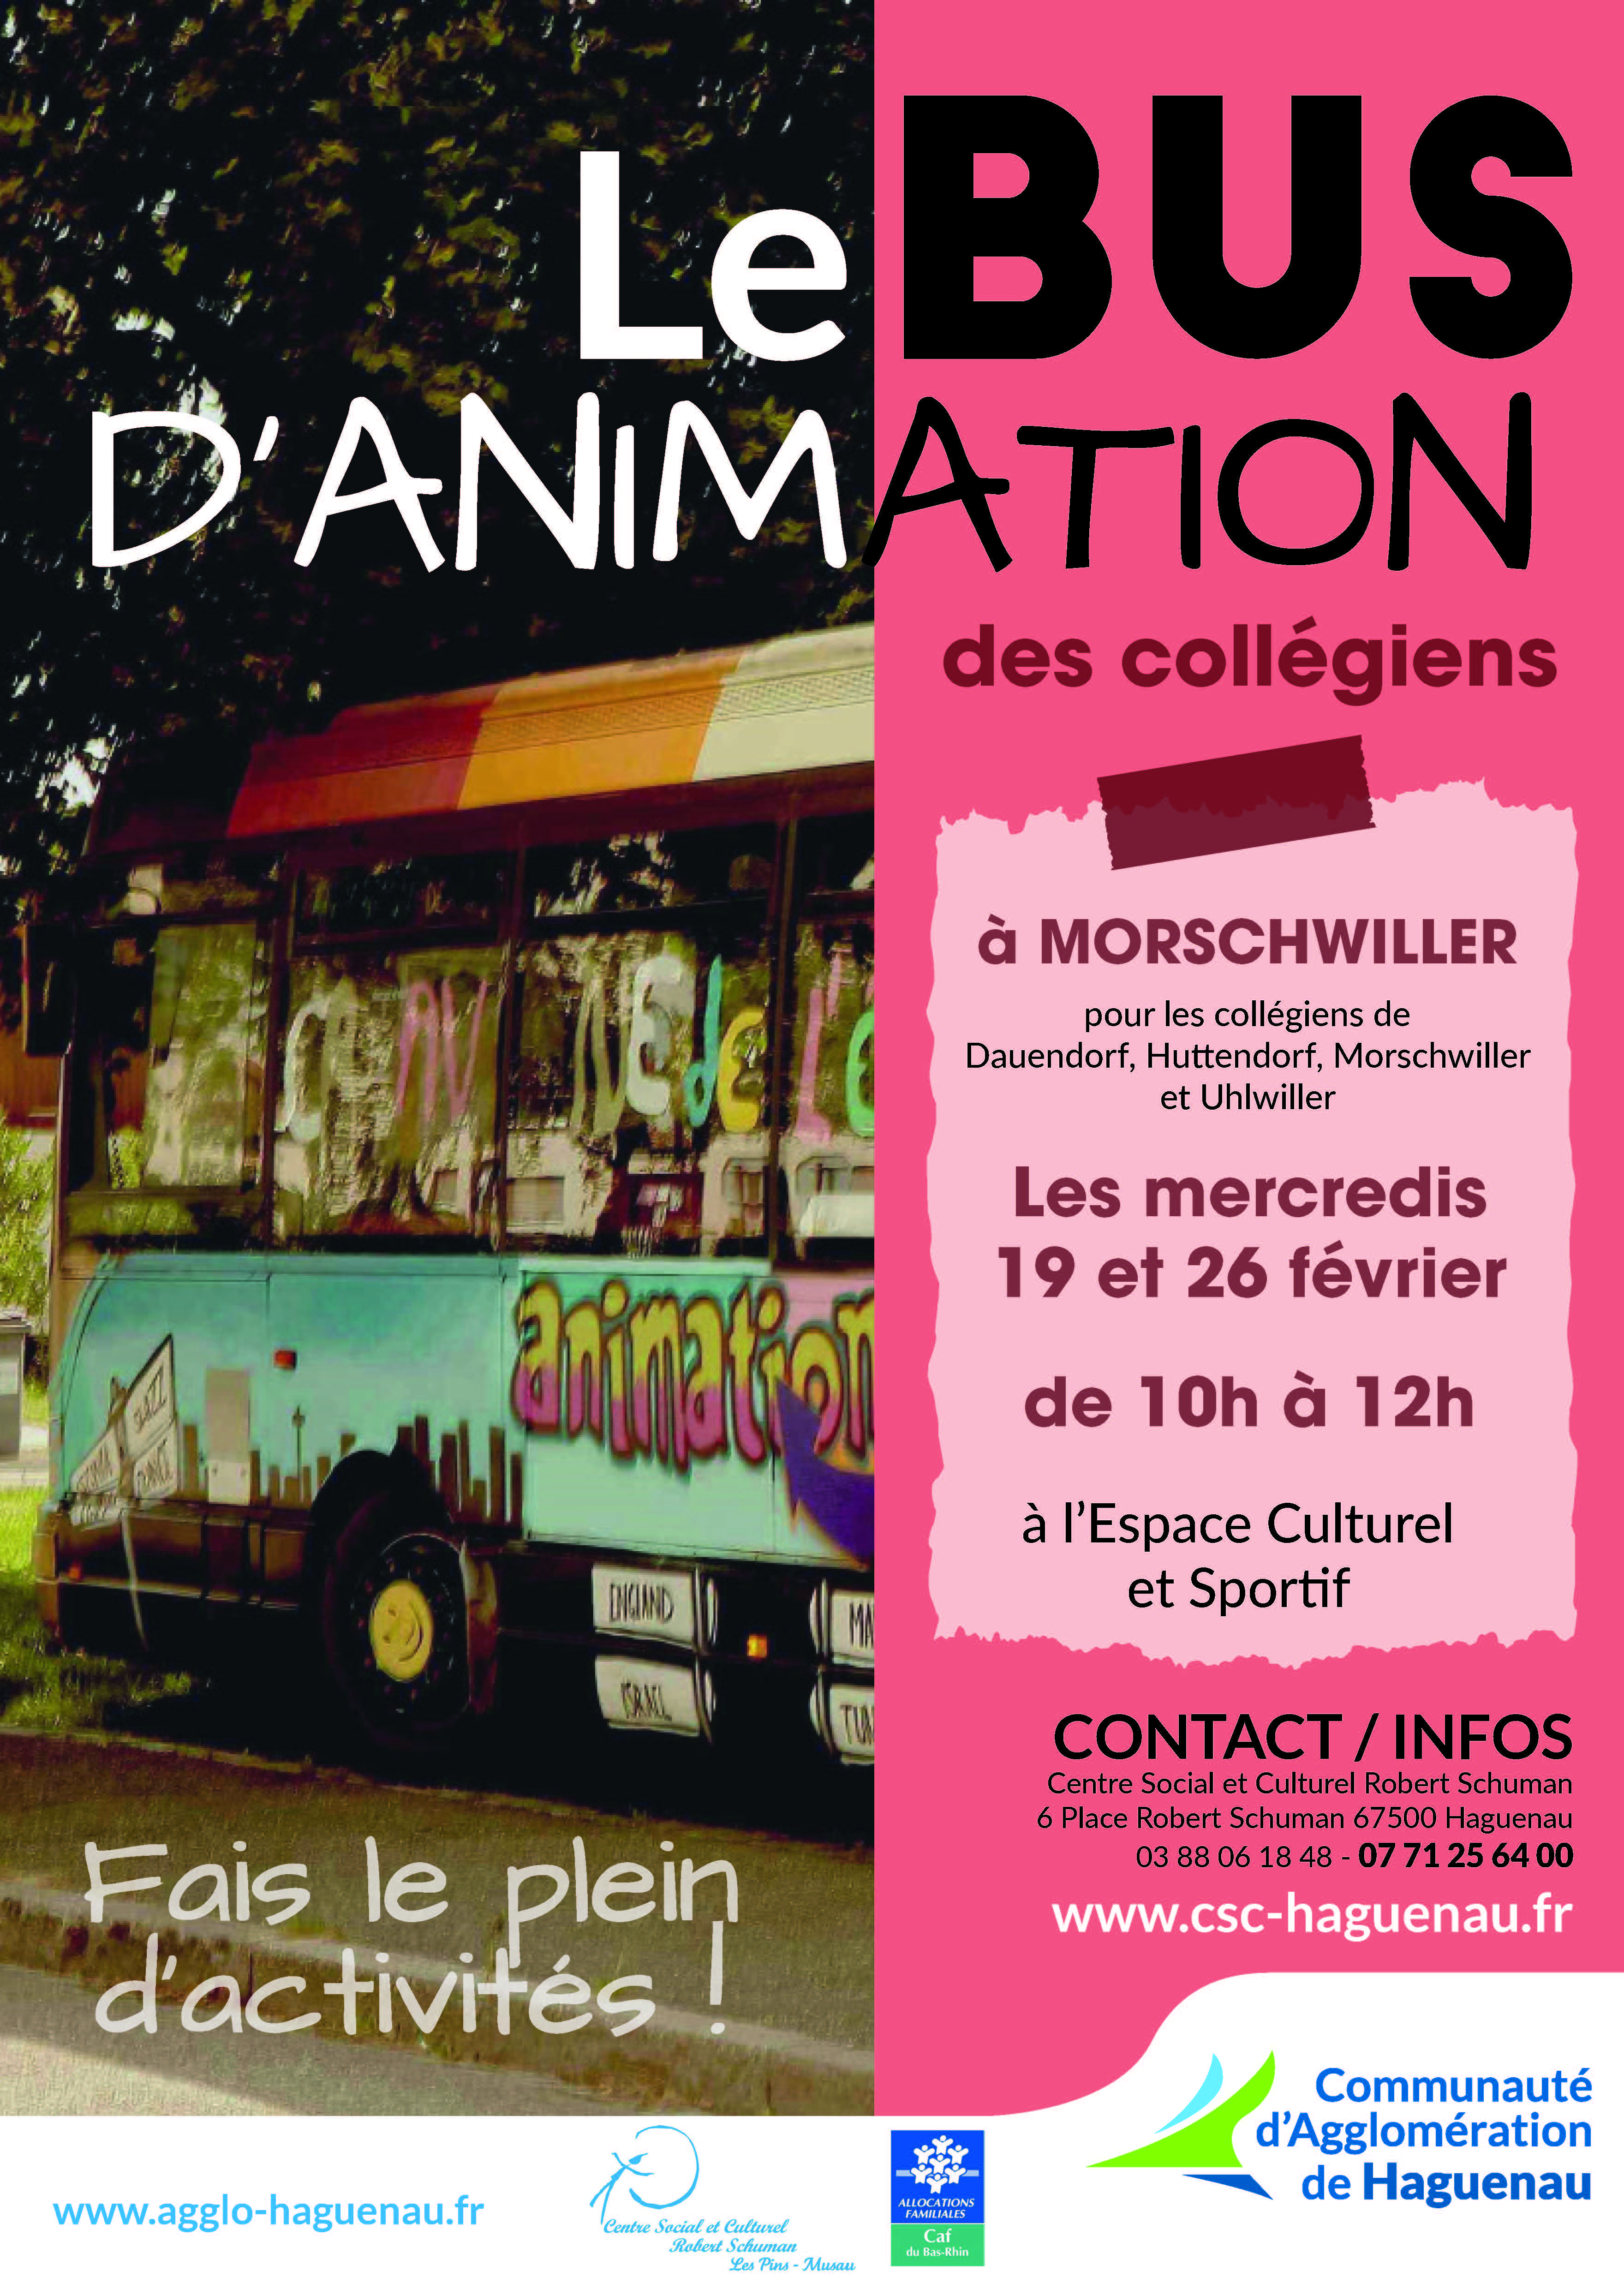 BUS D'ANIMATION à Morschwiller